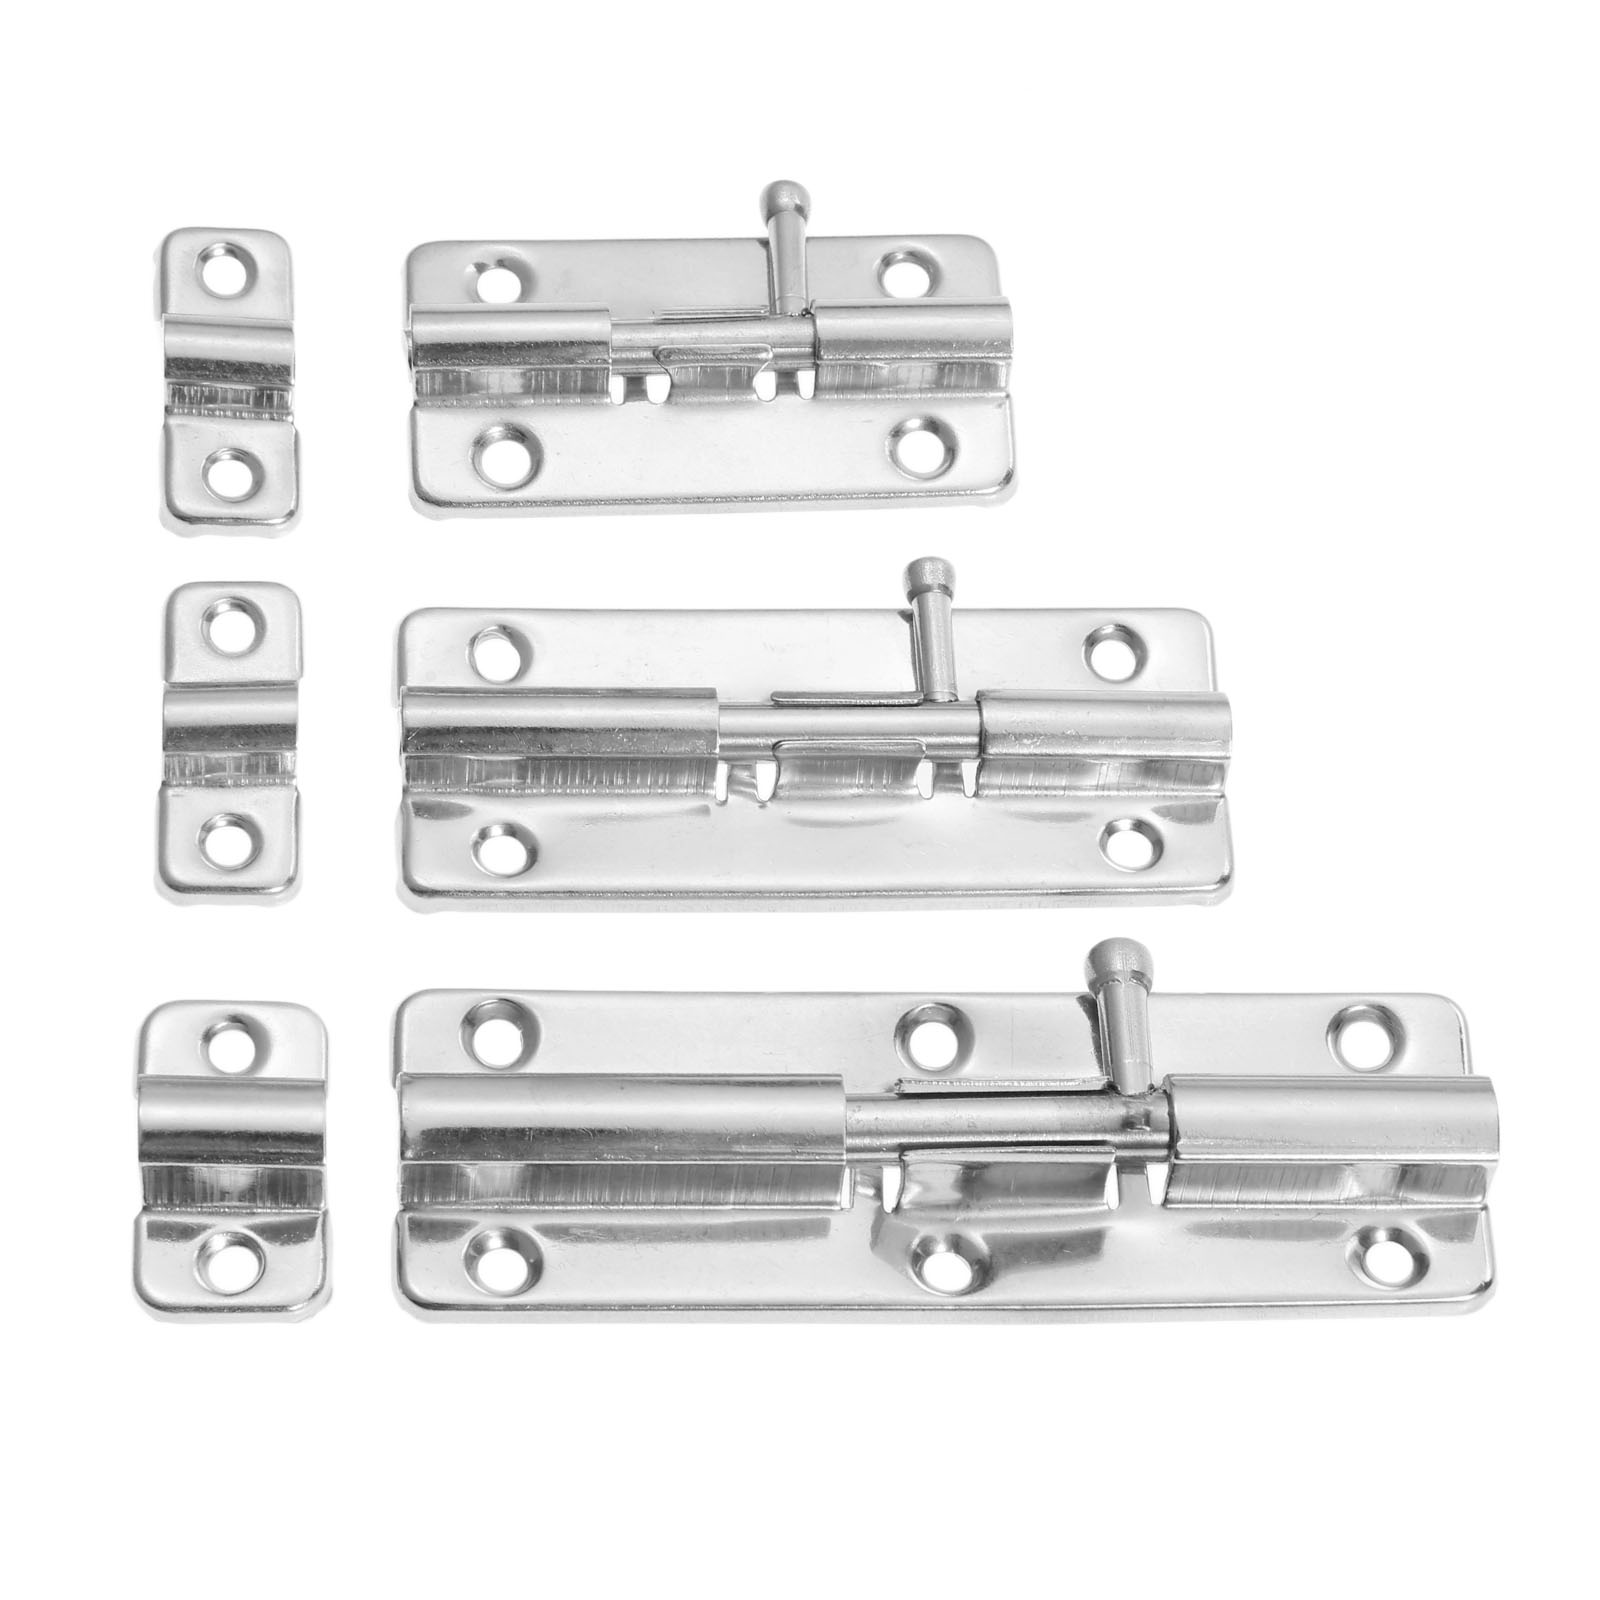 DRELD 1Pc 3/4/5 Inch Long Silver Stainless Steel Door Latch Sliding Lock Barrel Bolt Latch Hasp Stapler Gate Safety Lock цена